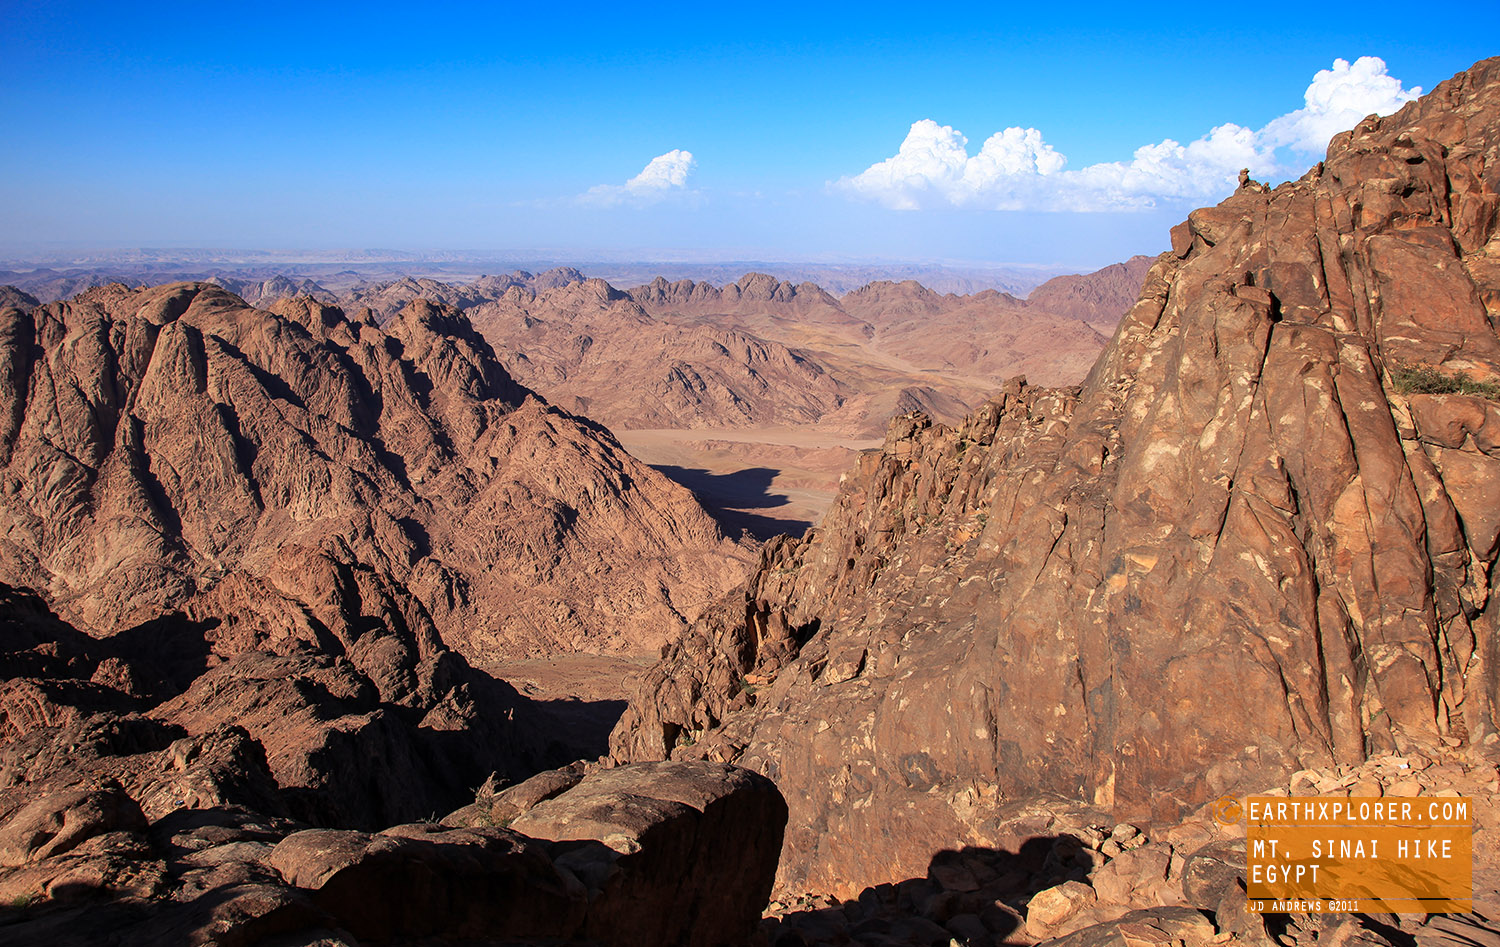 Mt Sinai Nice View Egypt.jpg